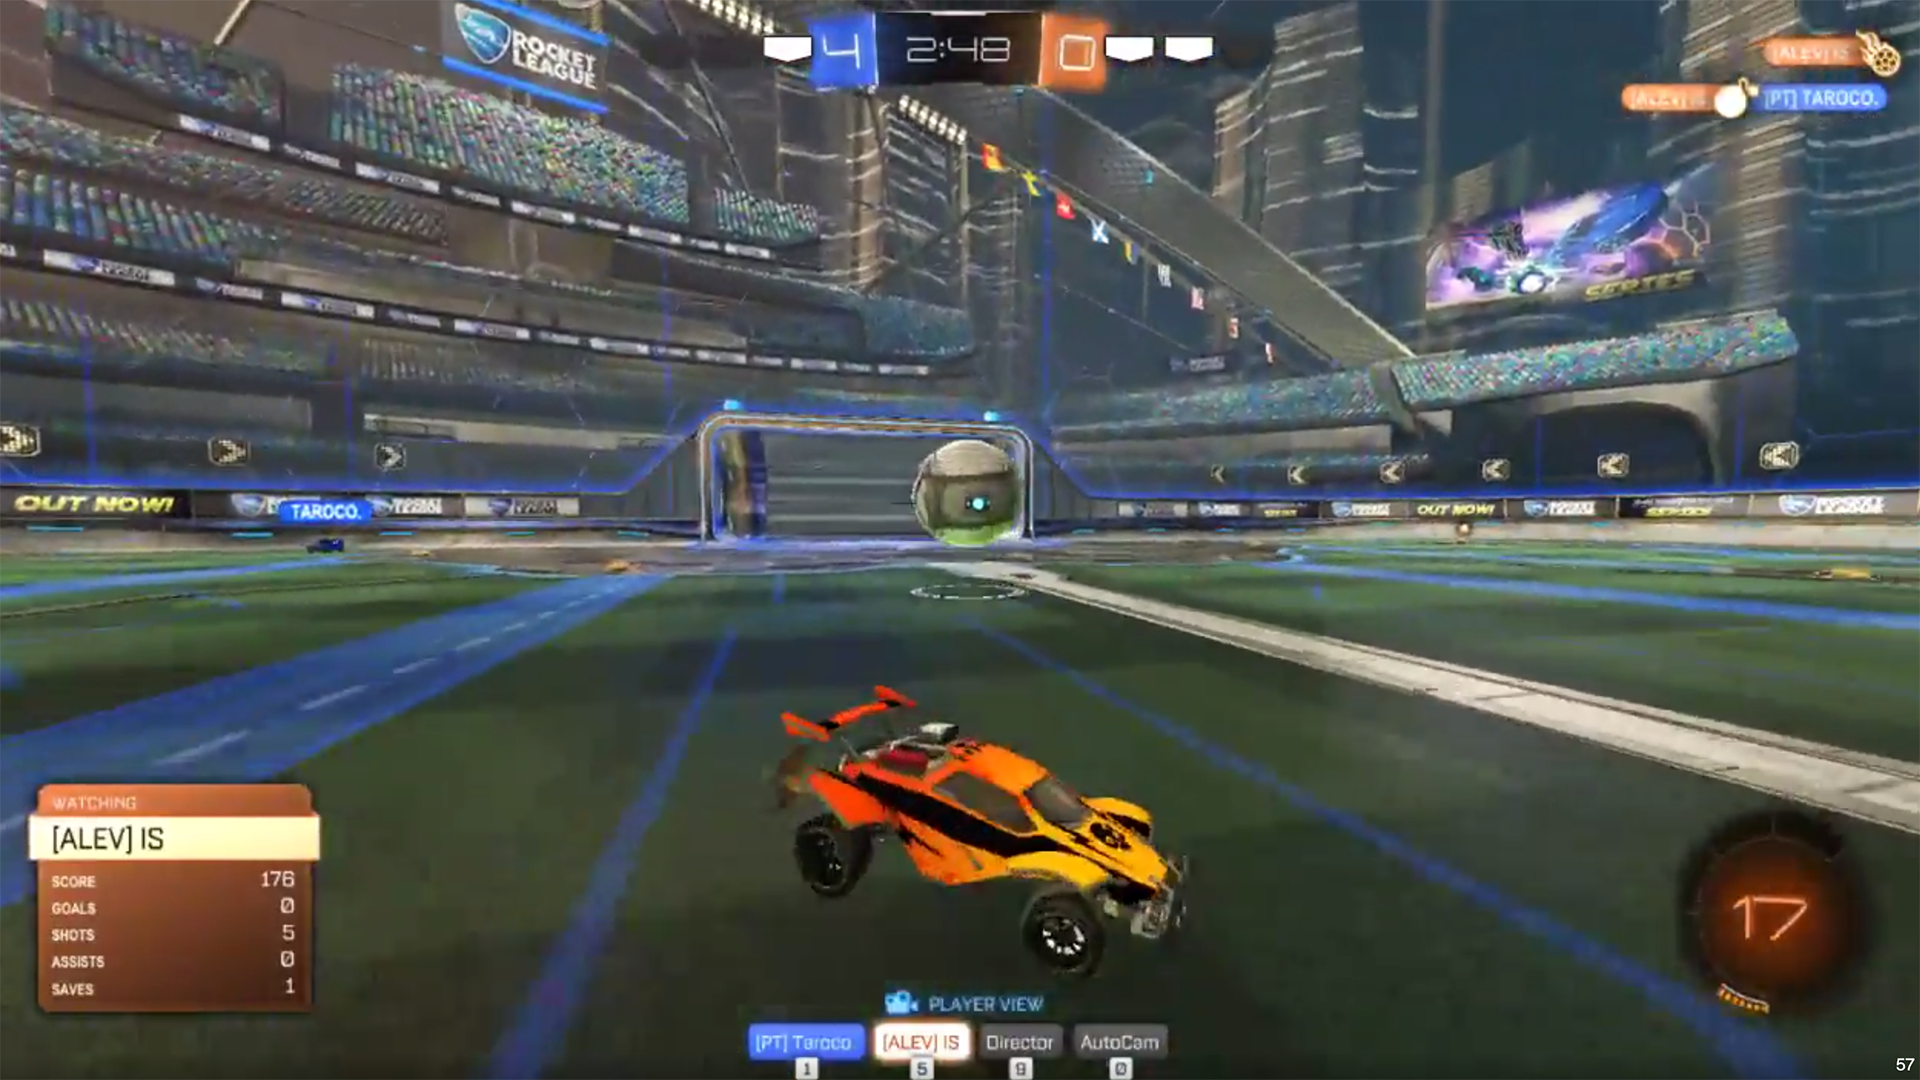 Twitch streamer gets struck by lightning live during Rocket League game 1